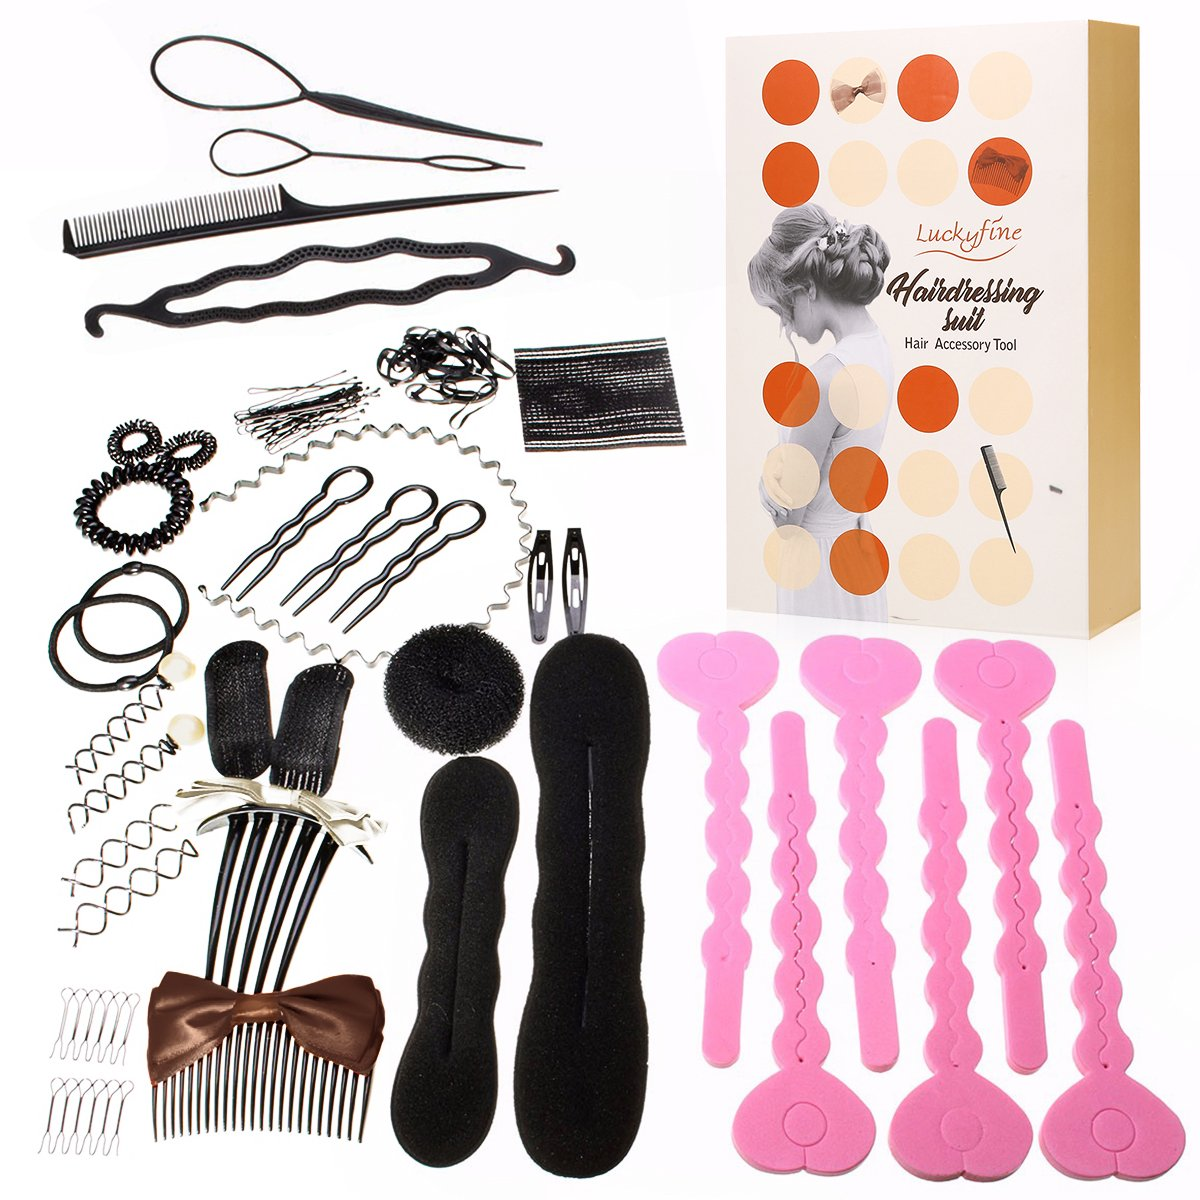 LuckyFine 26 Pcs Hair Styling Accessories Kit Set, Hair Design Styling Tools, Hair Braider Hair Design Kit Maker Pads Hairpins Clip Donut Tool Kit, Magic Hair Styling Accessories for Girls or Women by Y.F.M